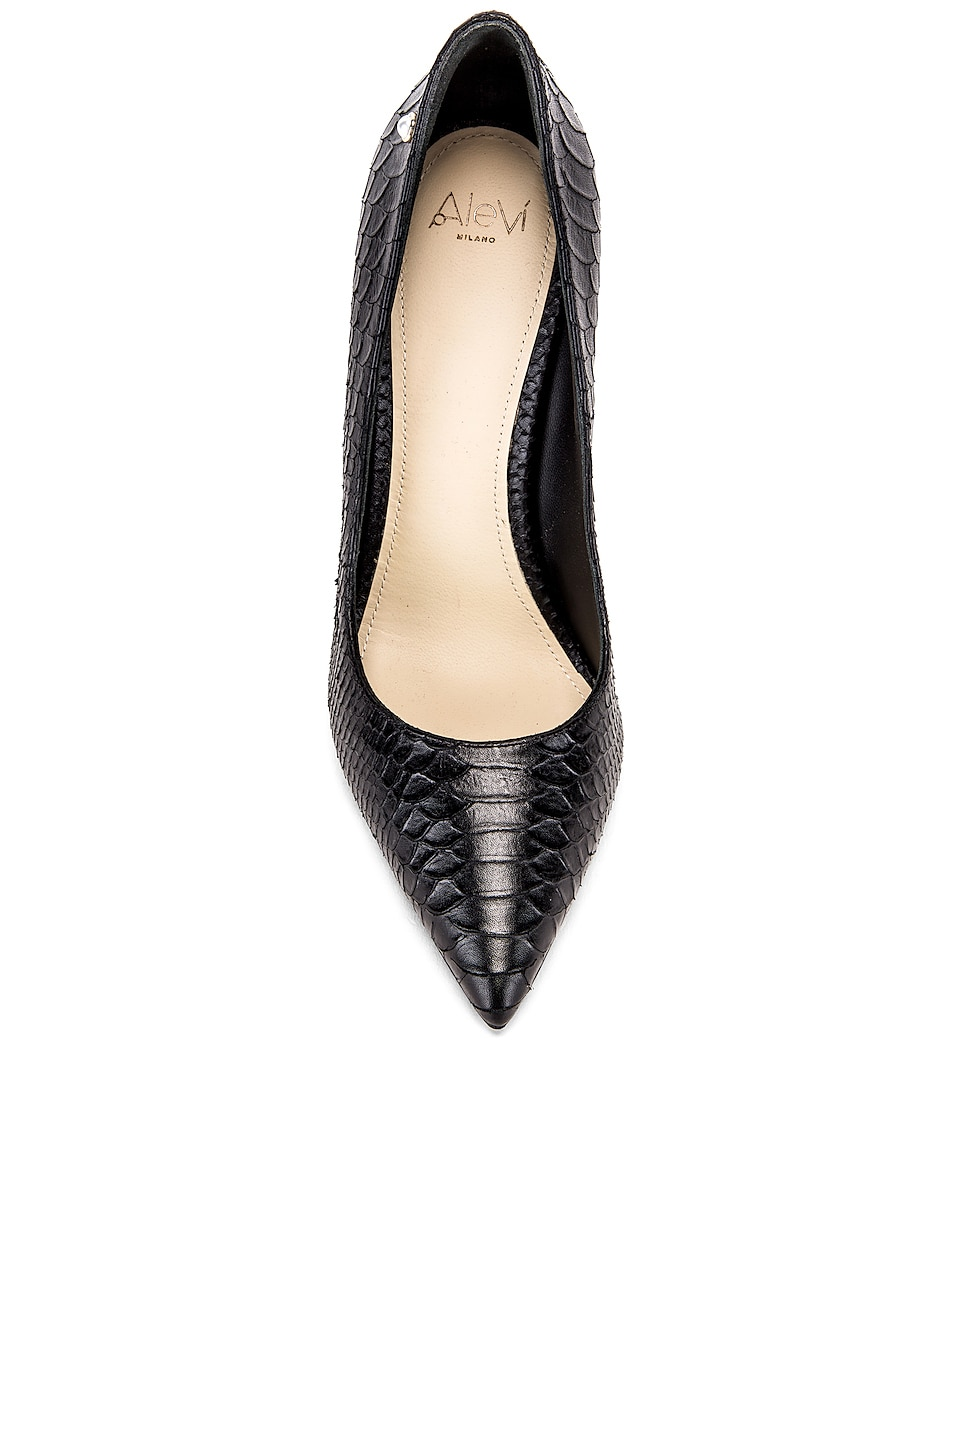 Image 4 of ALEVI Milano Alevi Carrie Pump in Black Snake